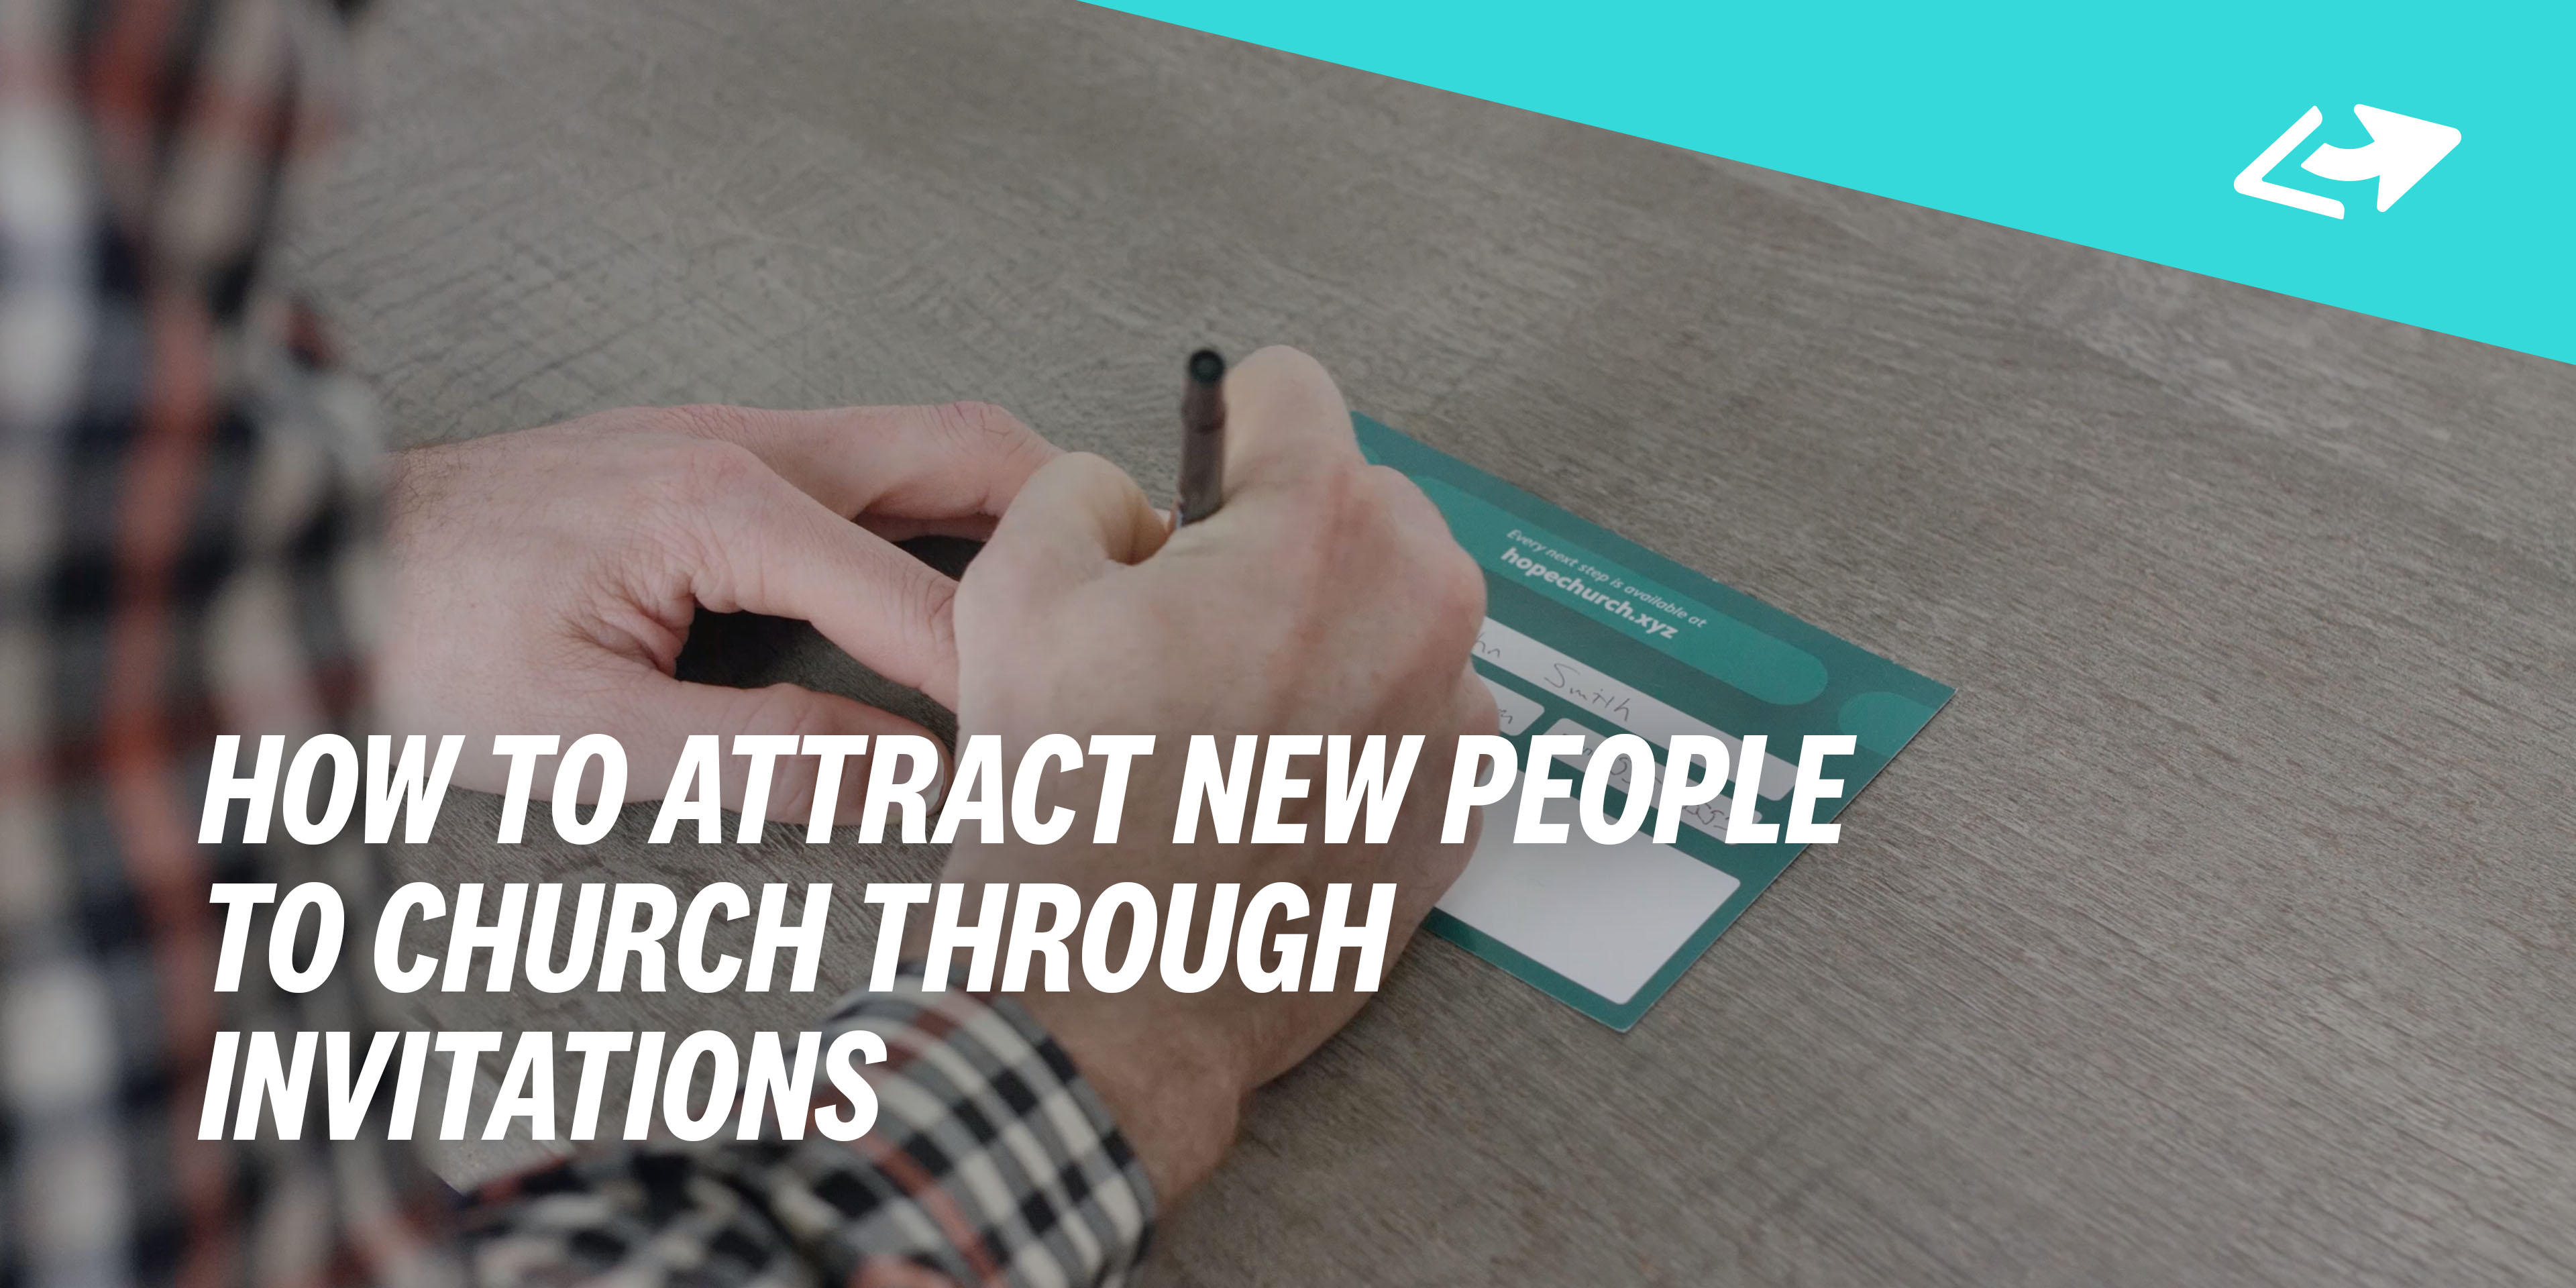 How To Attract New People Church Through Invitations